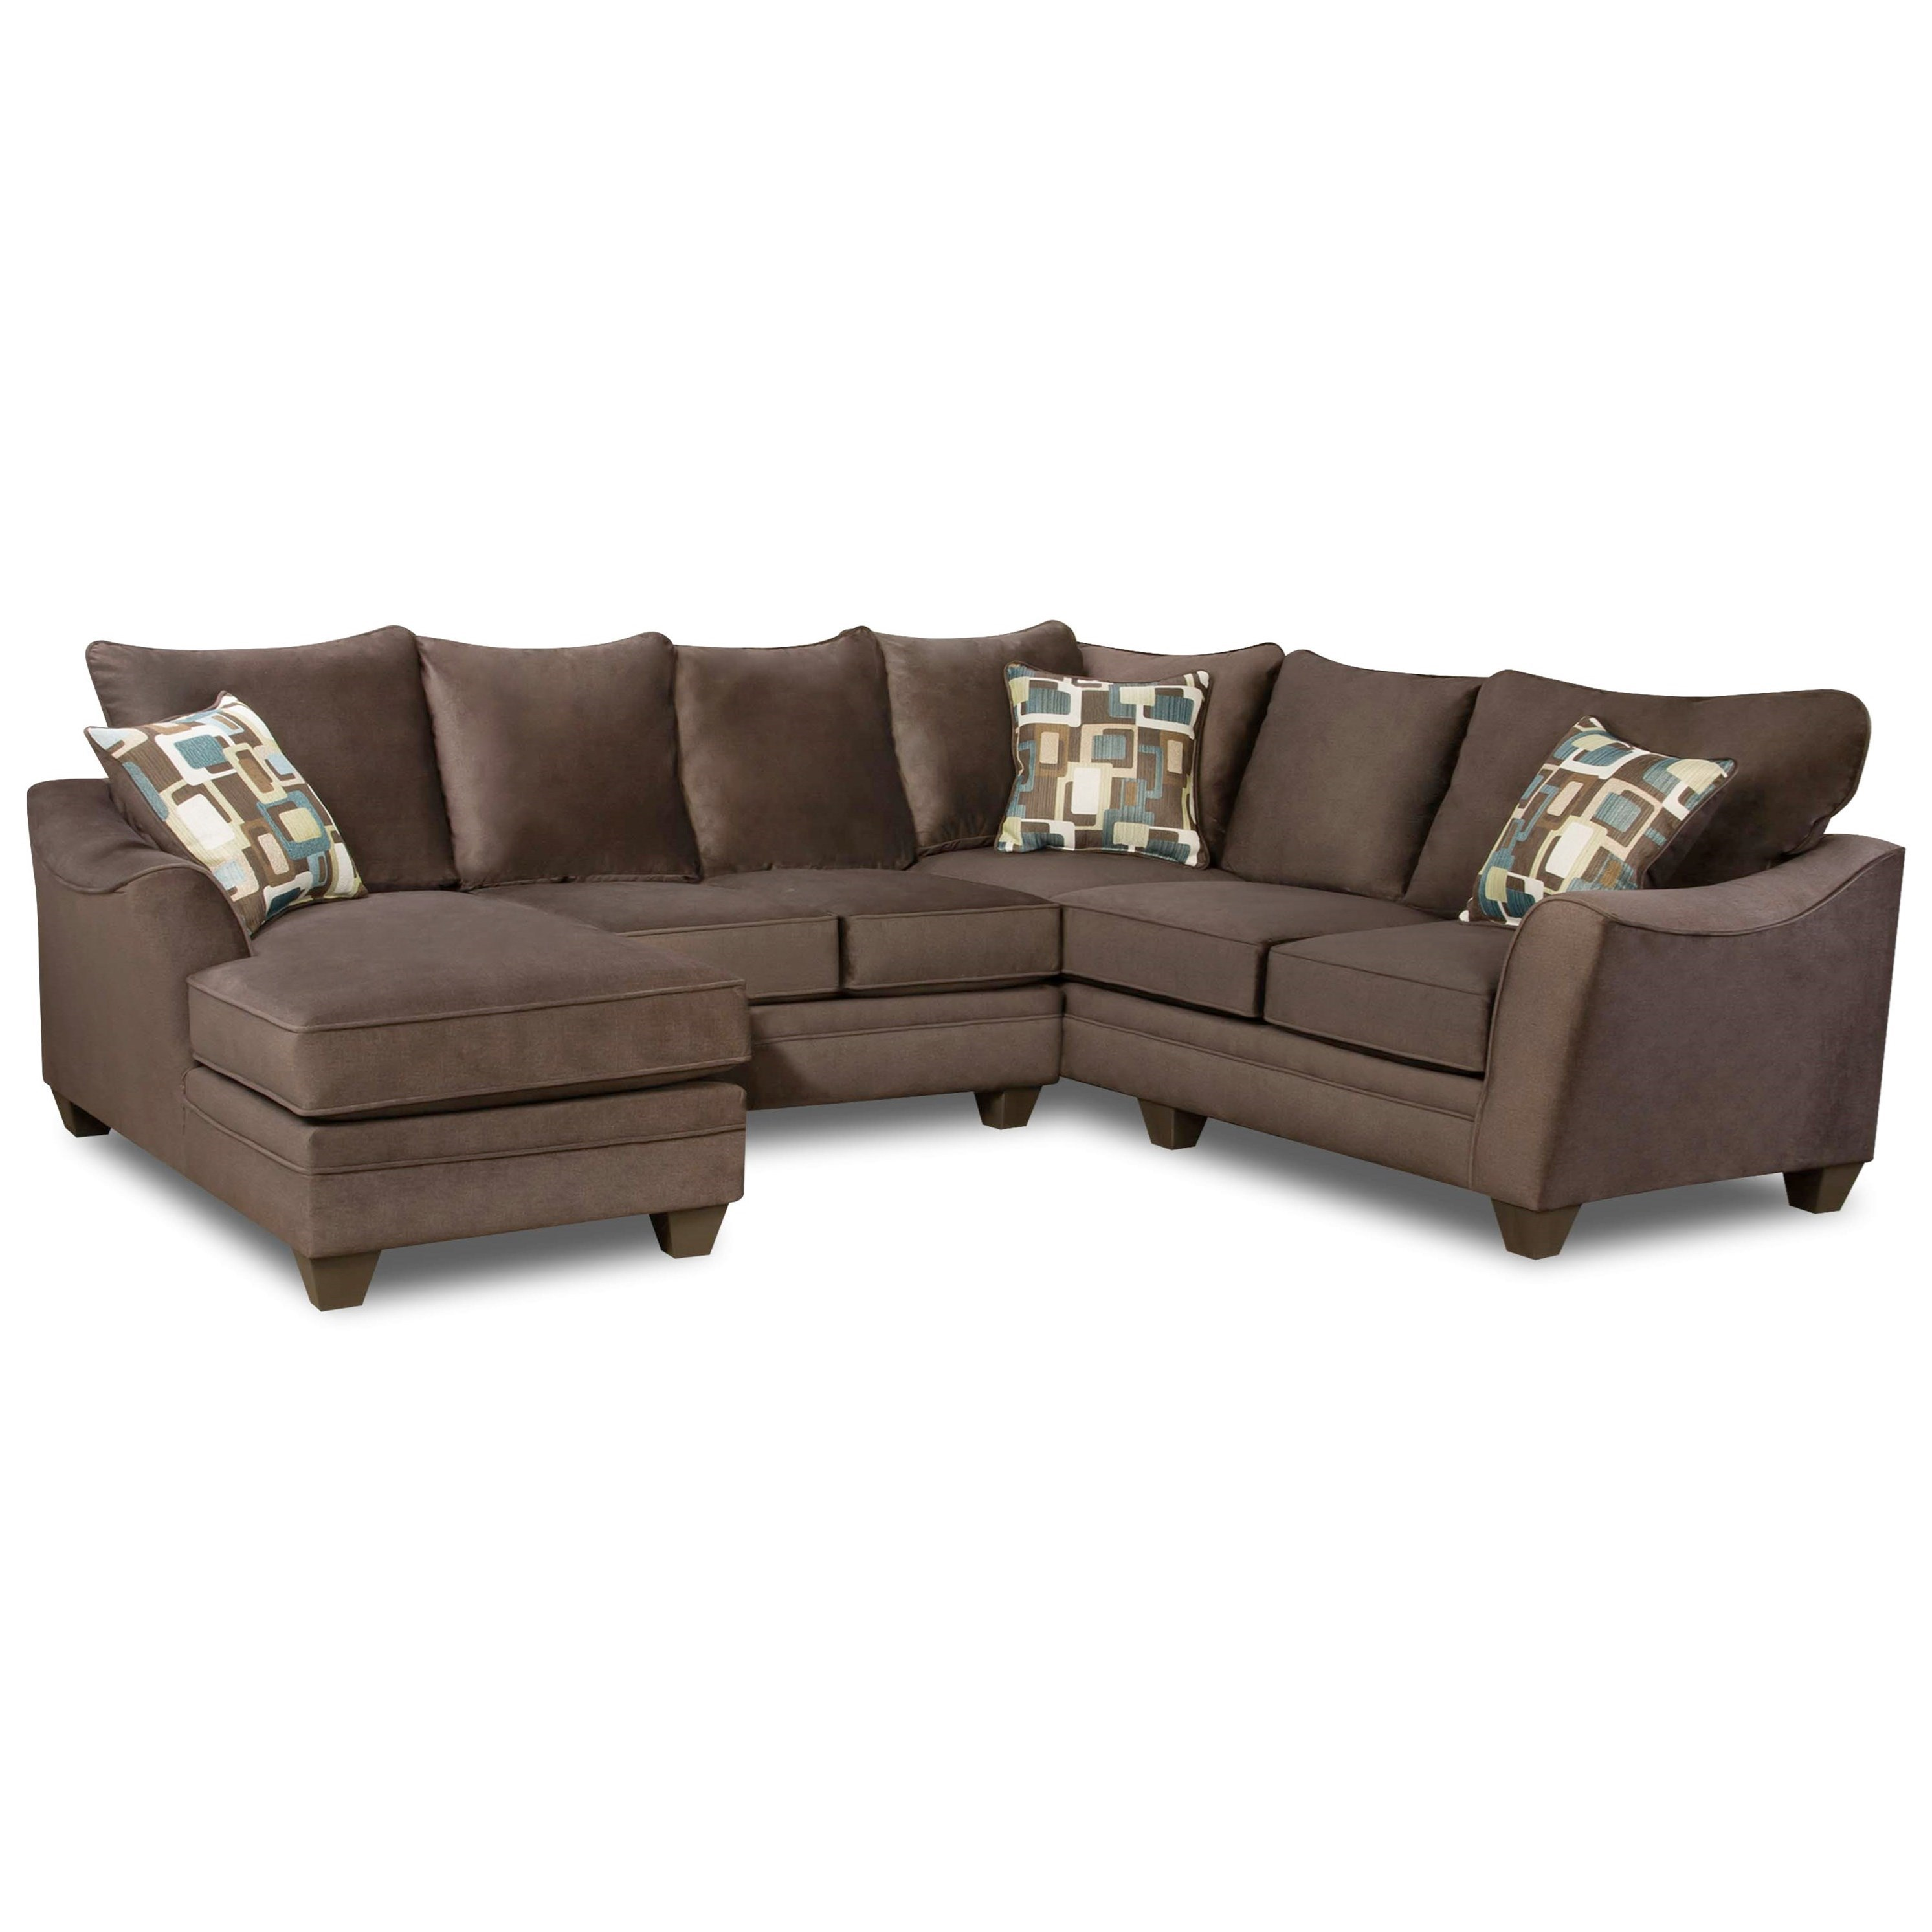 3810 Sectional Sofa with Left Side Chaise by Peak Living at Prime Brothers Furniture